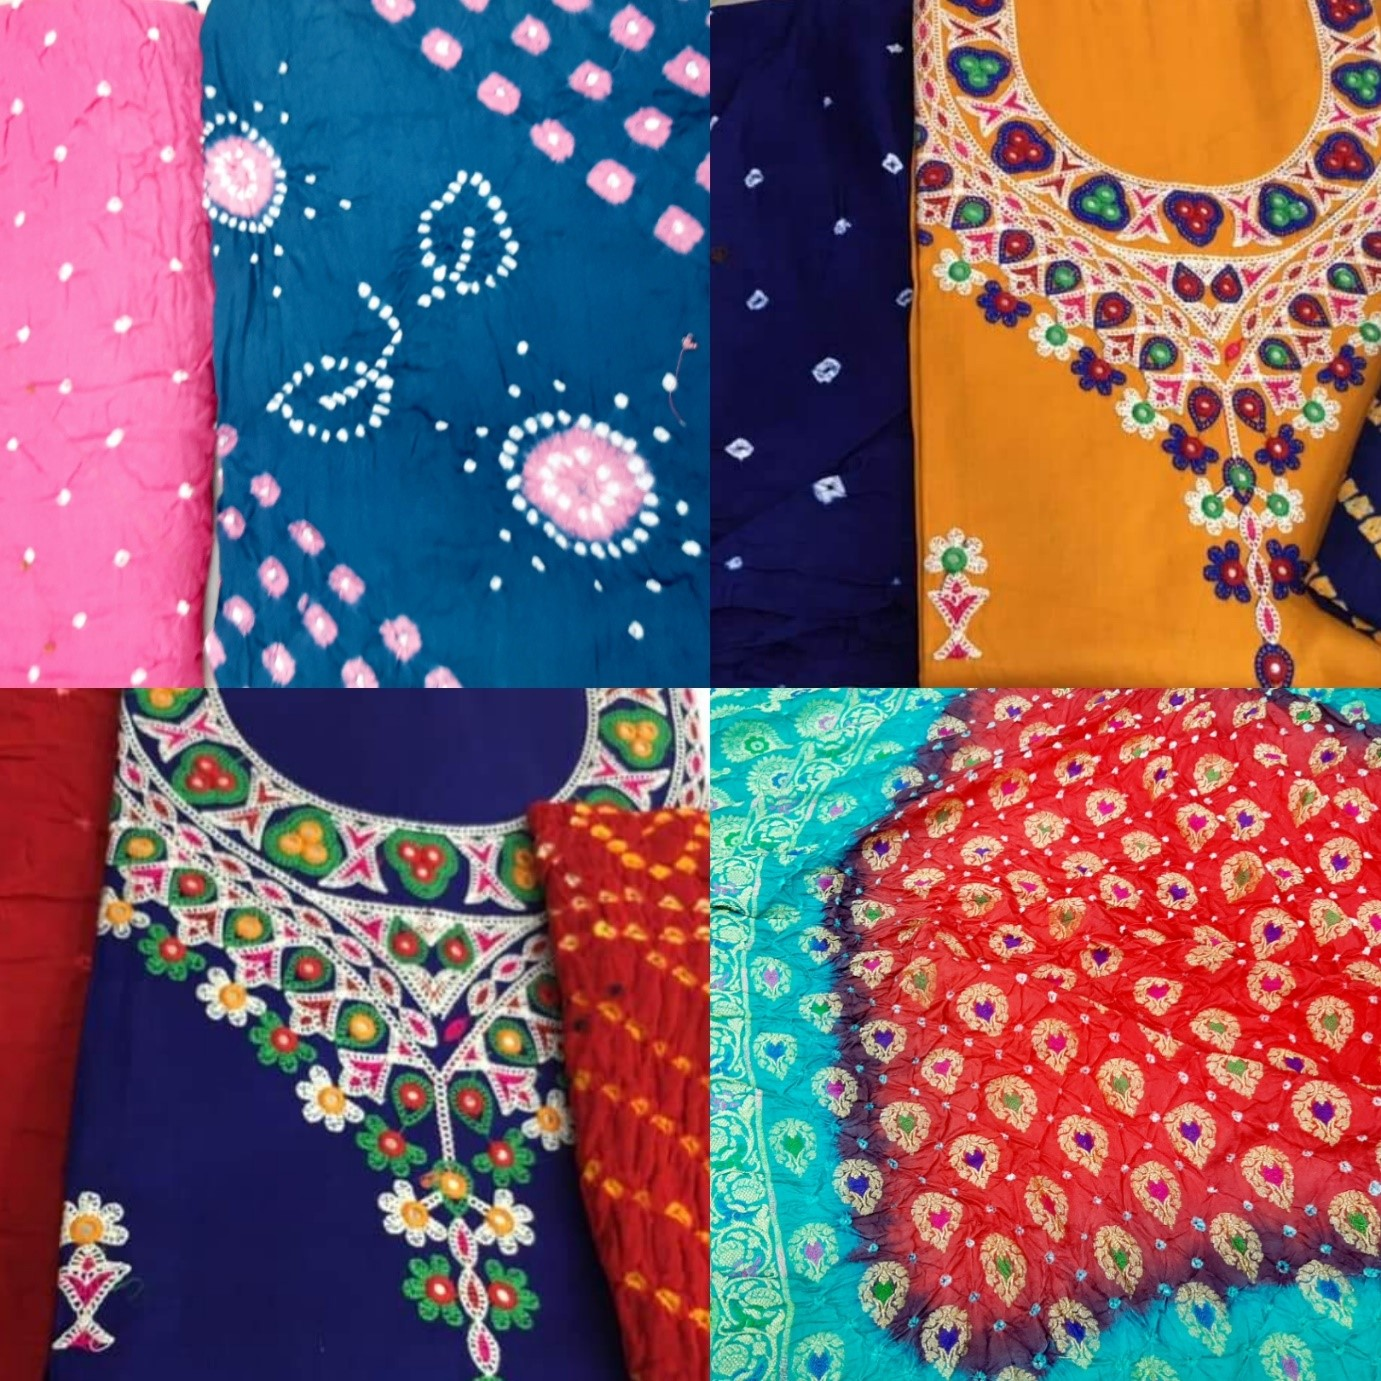 Bandhani suits, baroda prints, vadodara, yellow dress, bandhani, bandhej, embroidery,